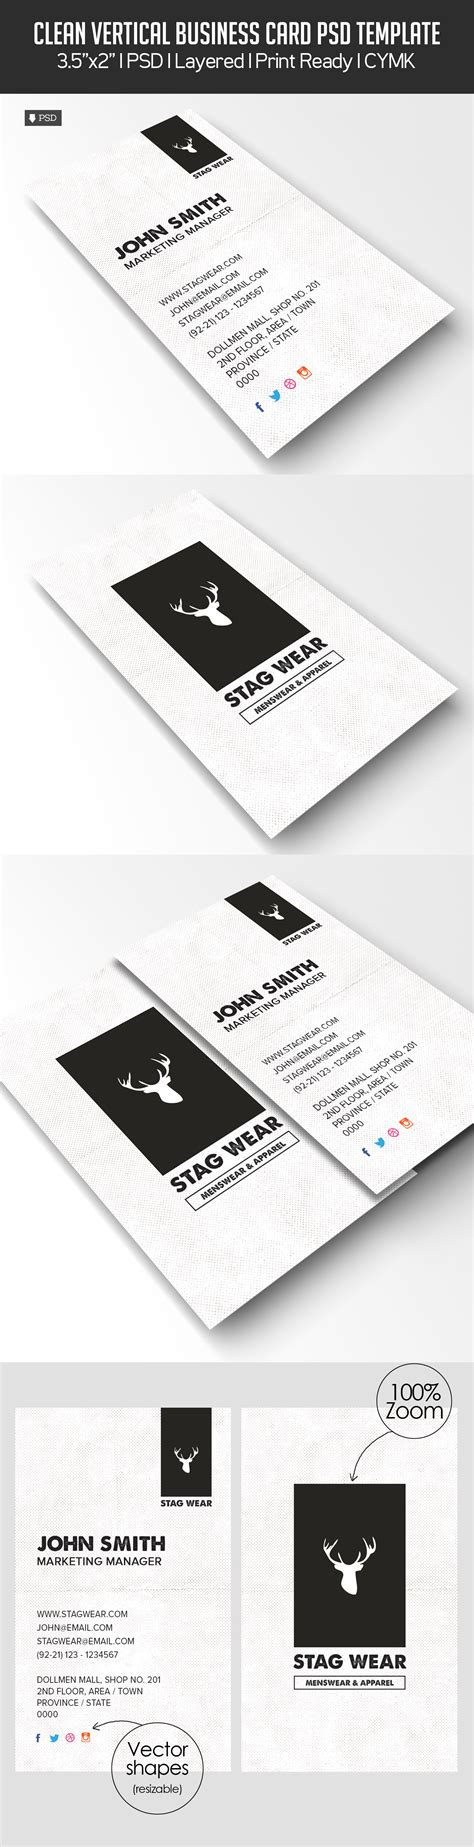 verticle business card template freebie vertical business card psd template freebies